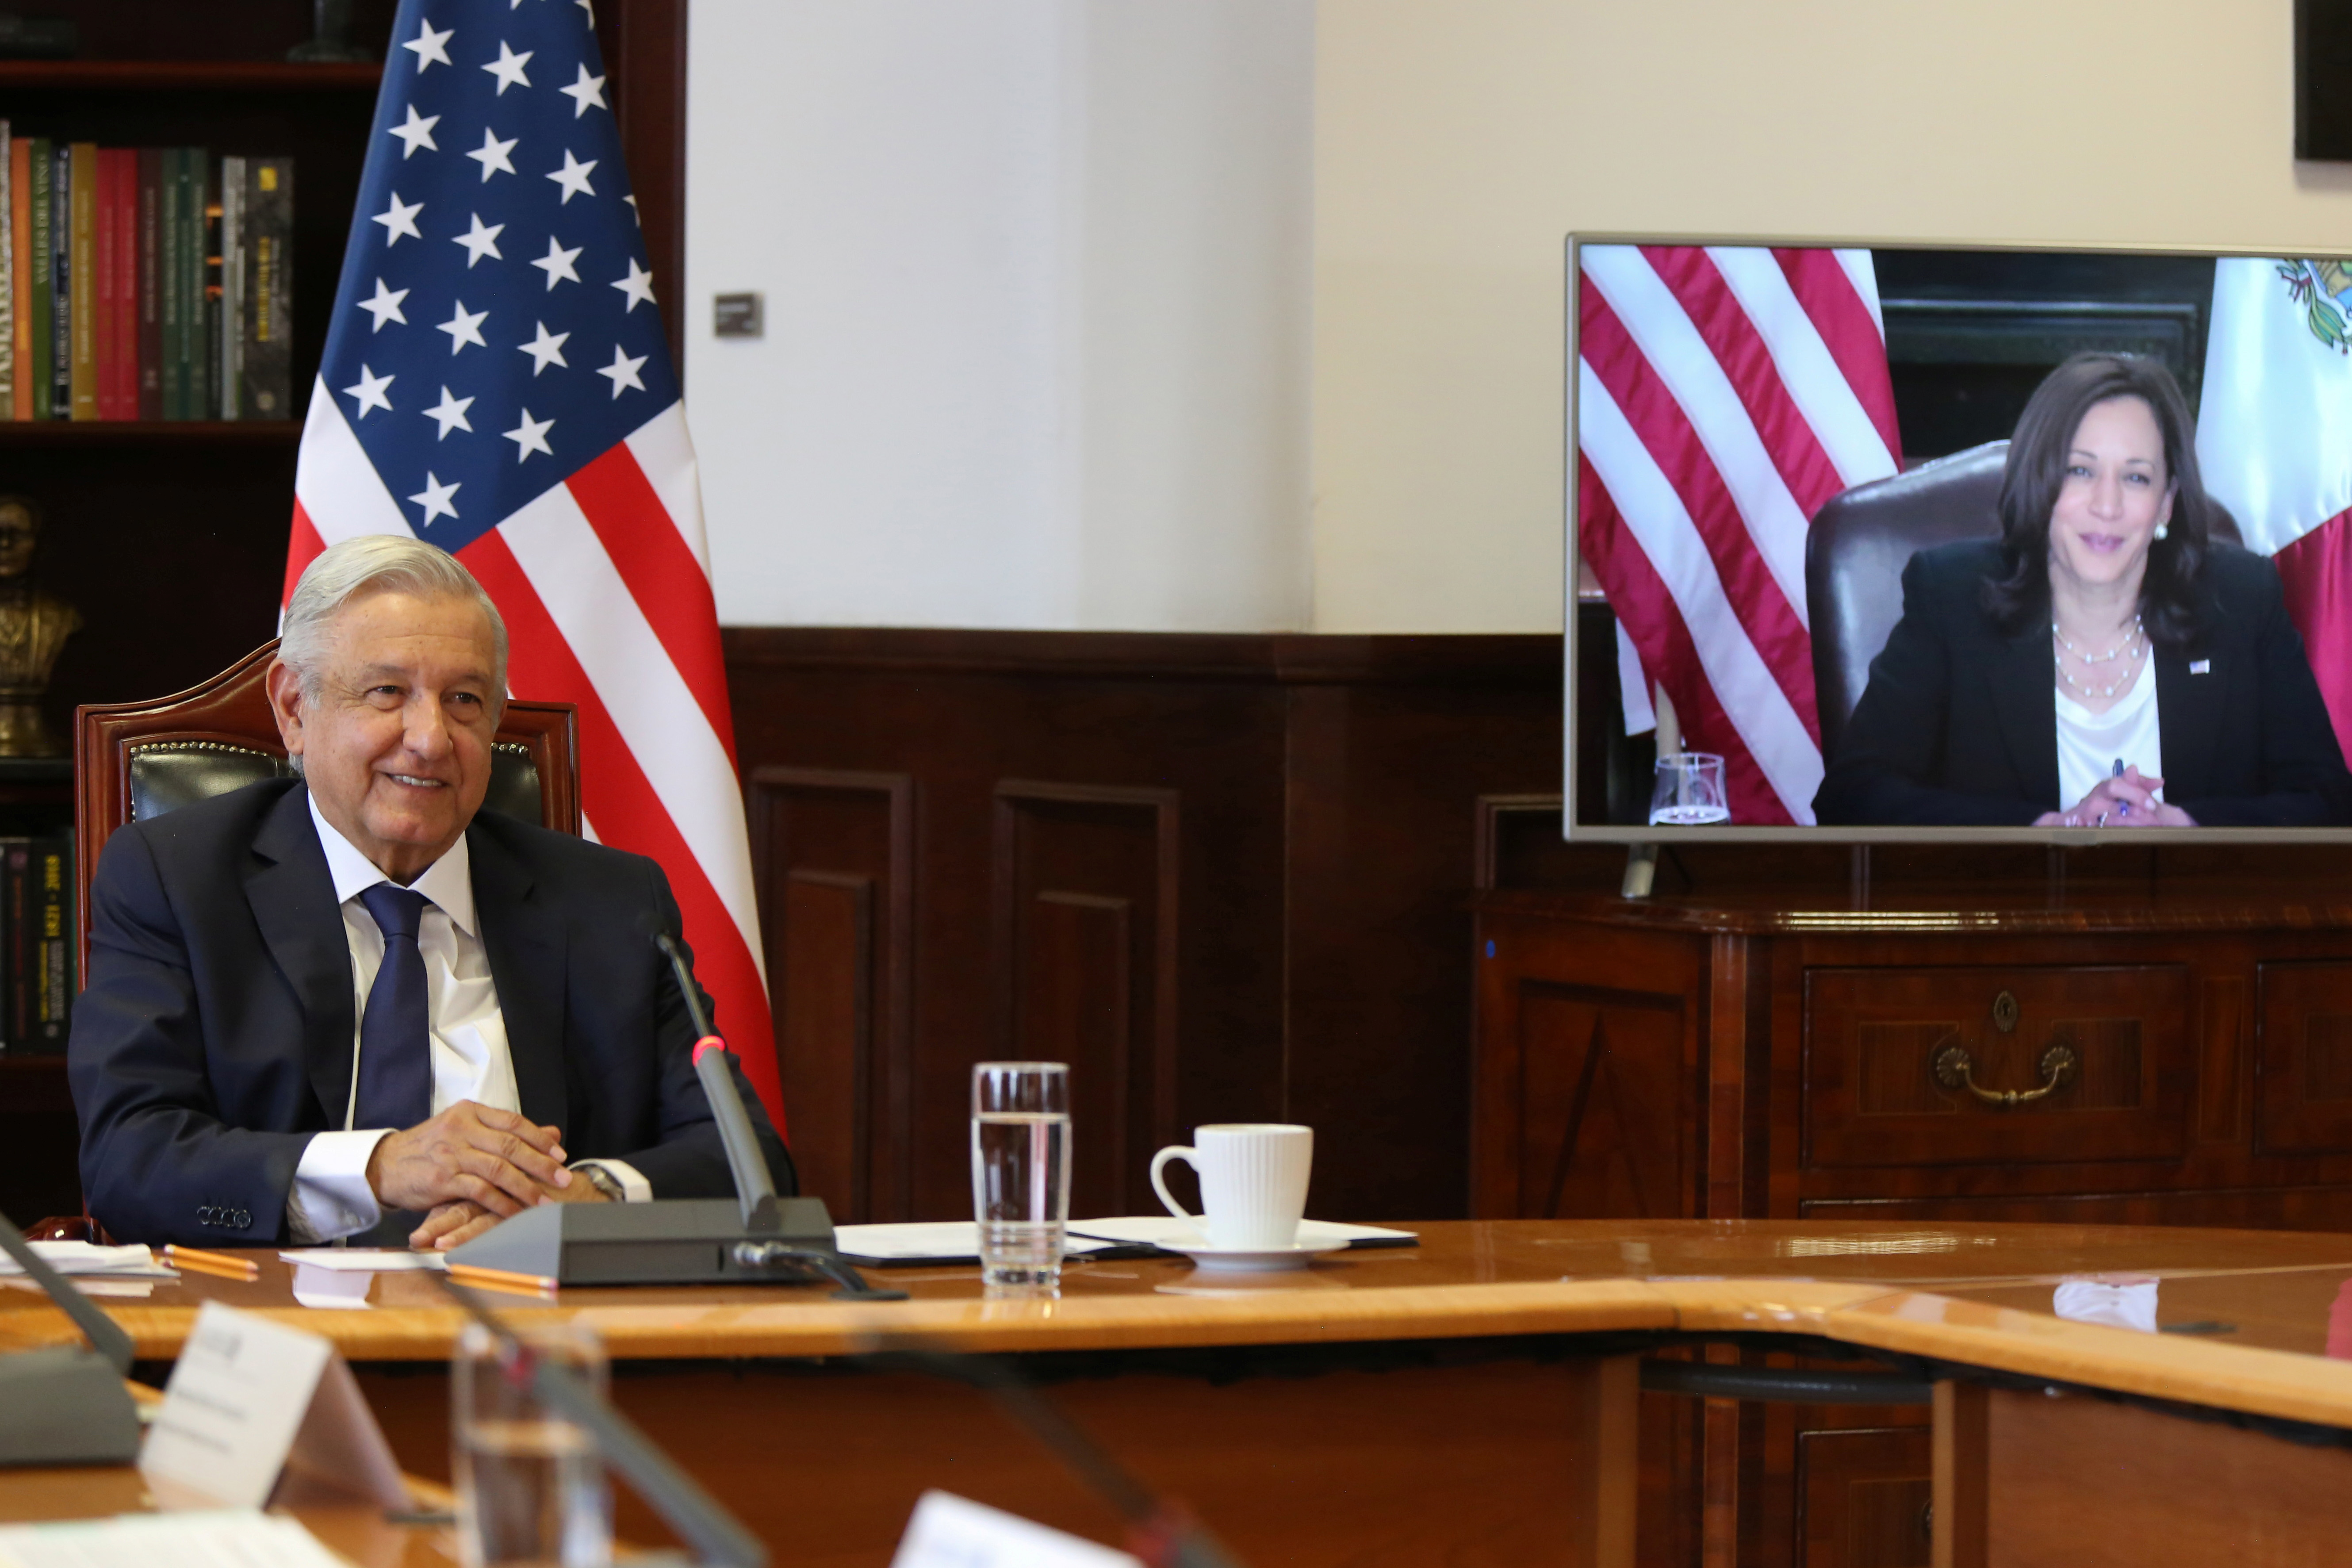 Mexican President Andres Manuel Lopez Obrador holds a virtual bilateral meeting with U.S. Vice President Kamala Harris from the National Palace in Mexico City, Mexico May 7, 2021. Mexico's Presidency/Handout via REUTERS